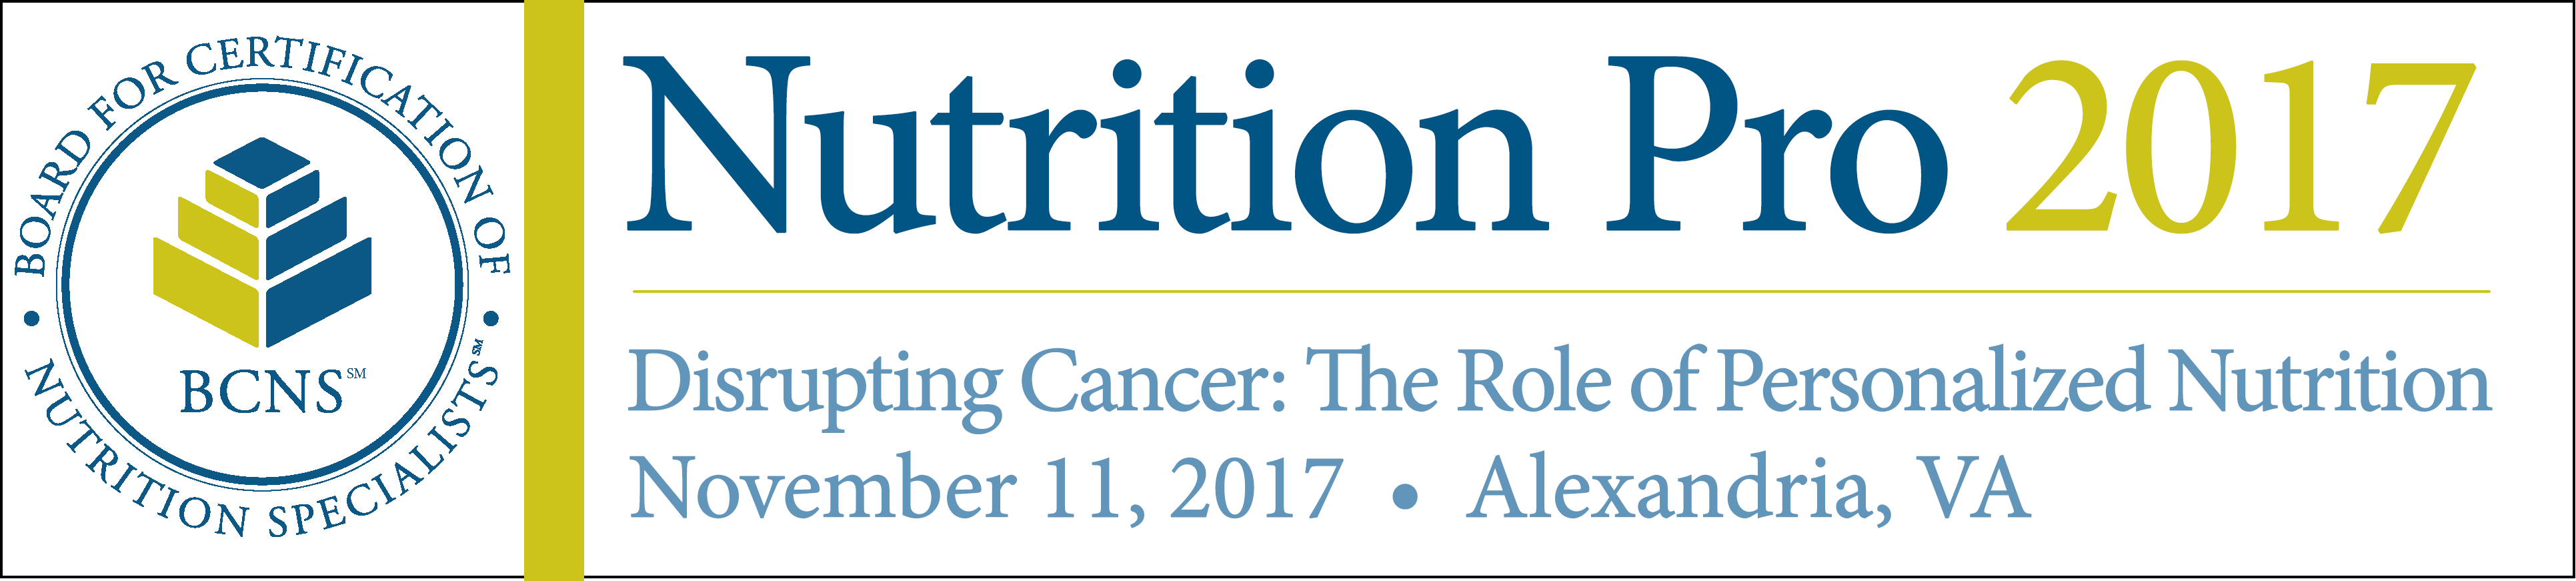 Nutrition Pro 2017: Disrupting Cancer: The Role of Personalized Nutrition